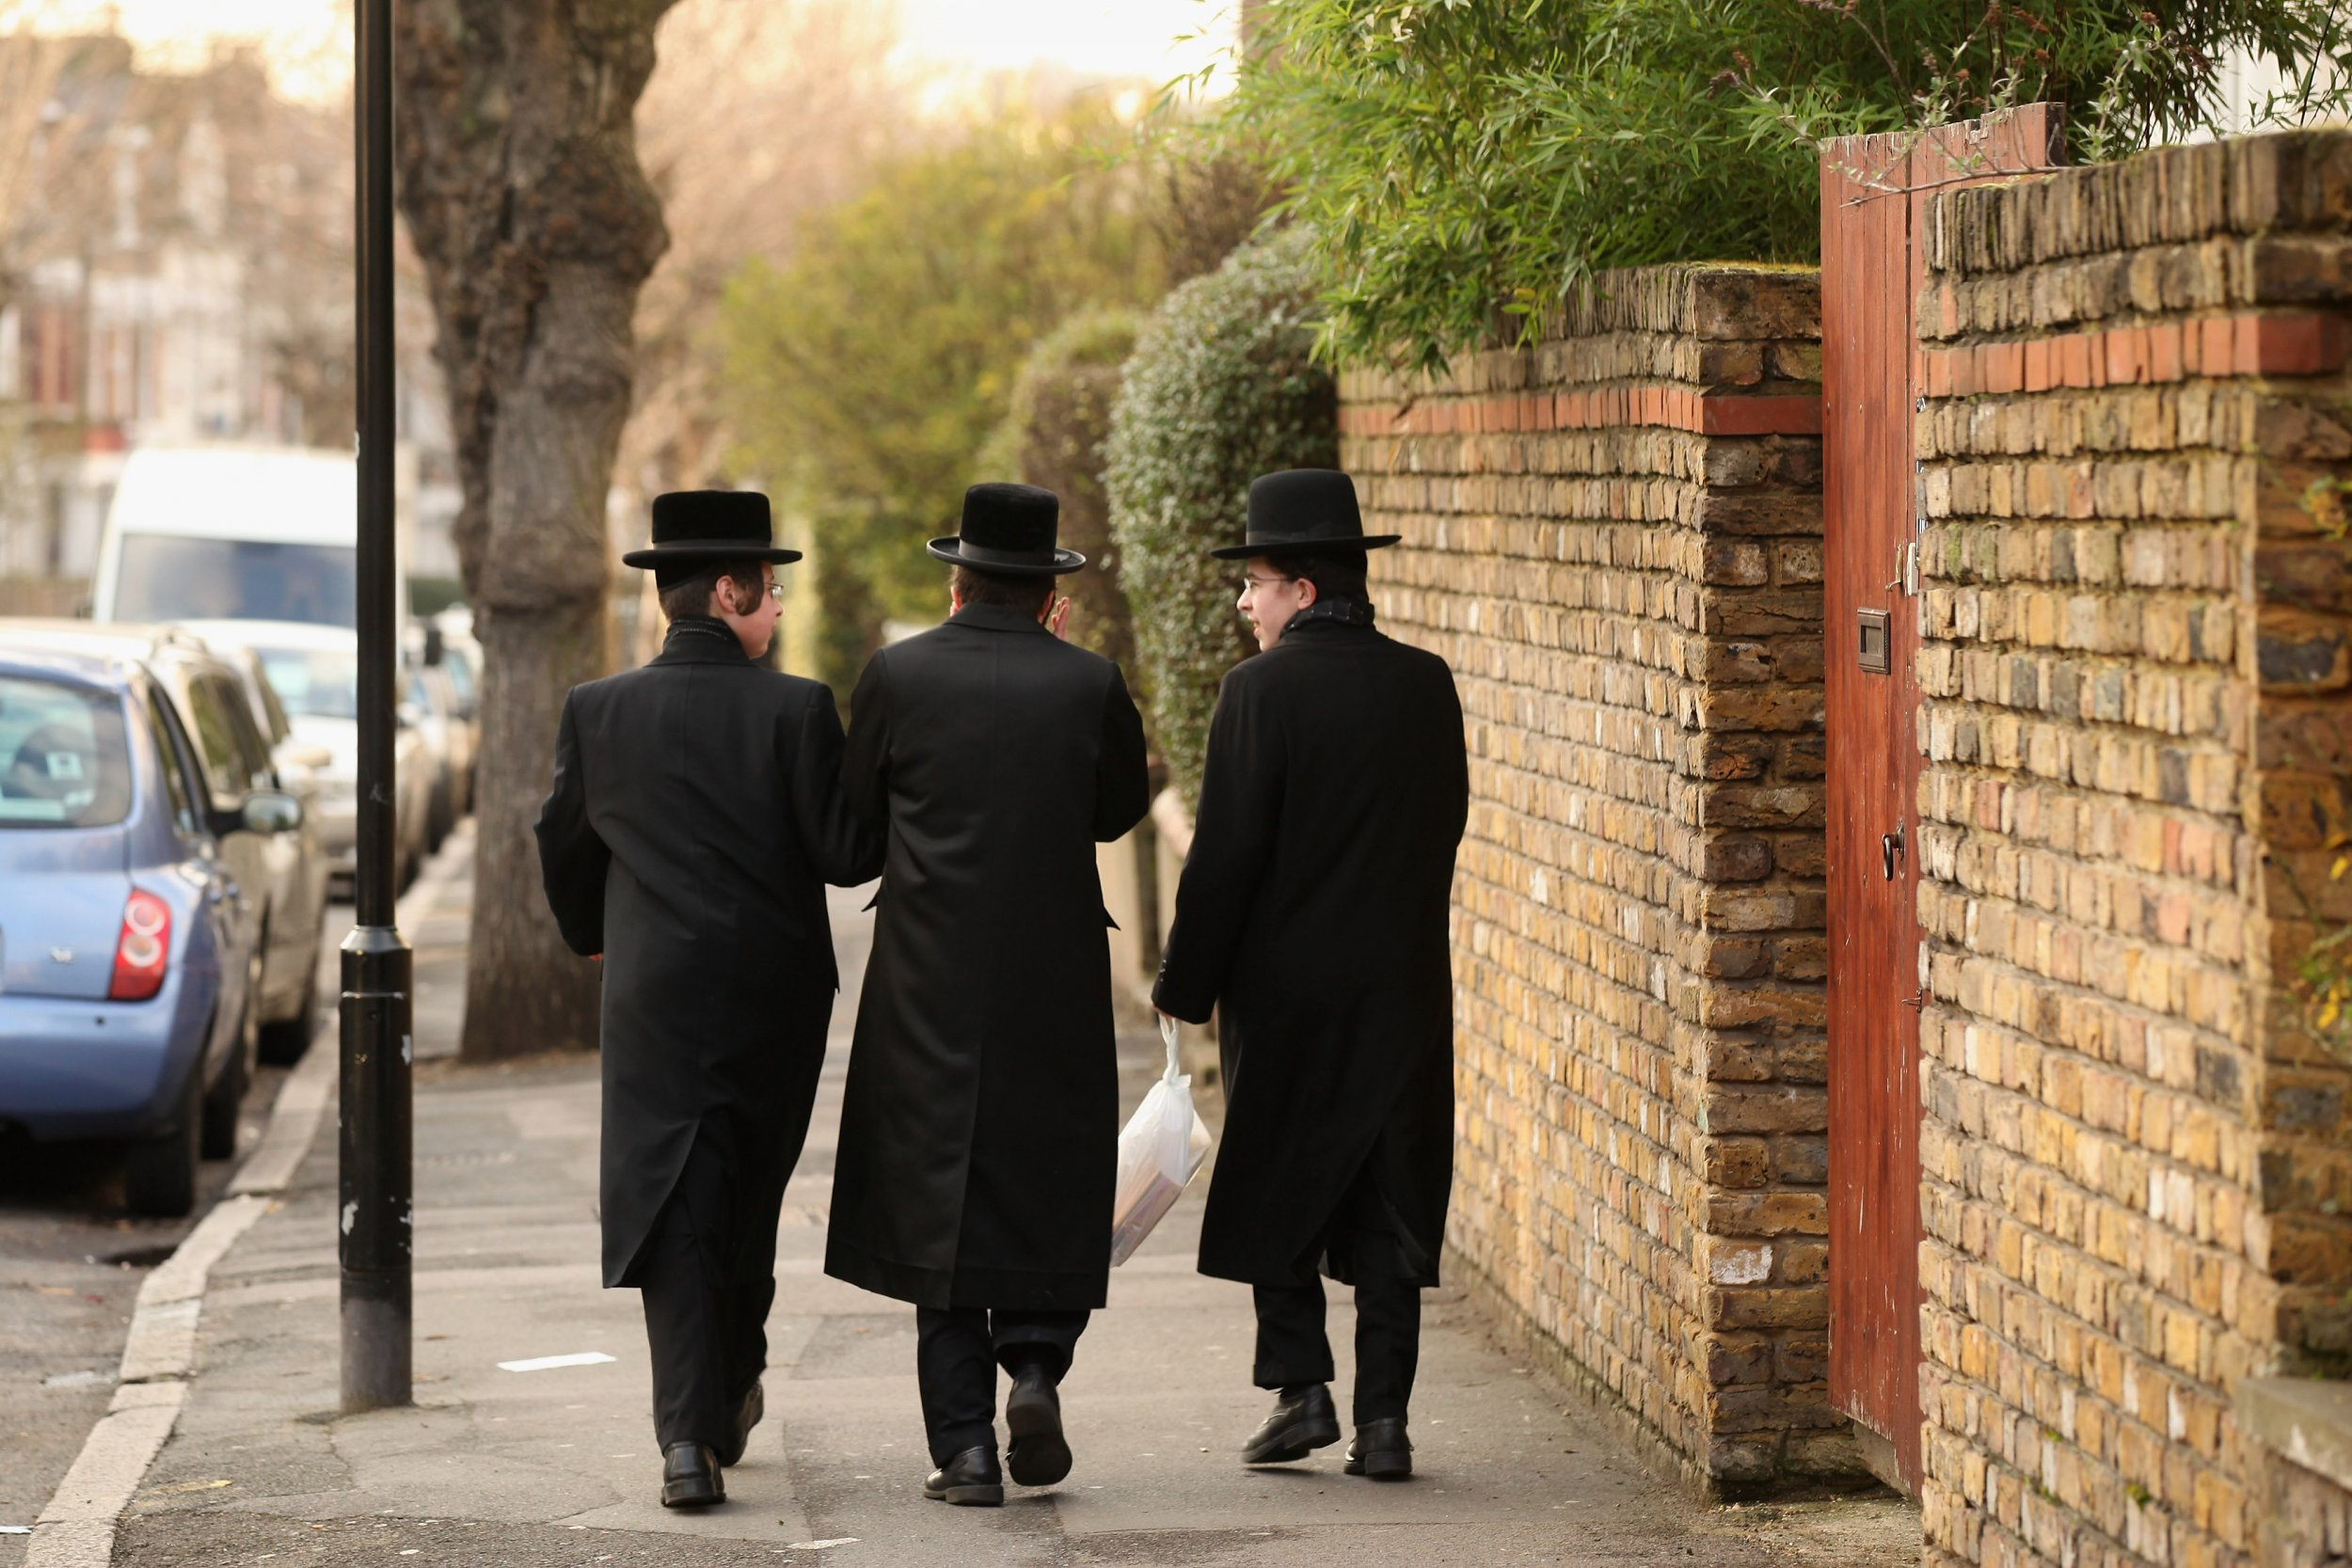 Divorce in the Orthodox Jewish Community Can Be Brutal